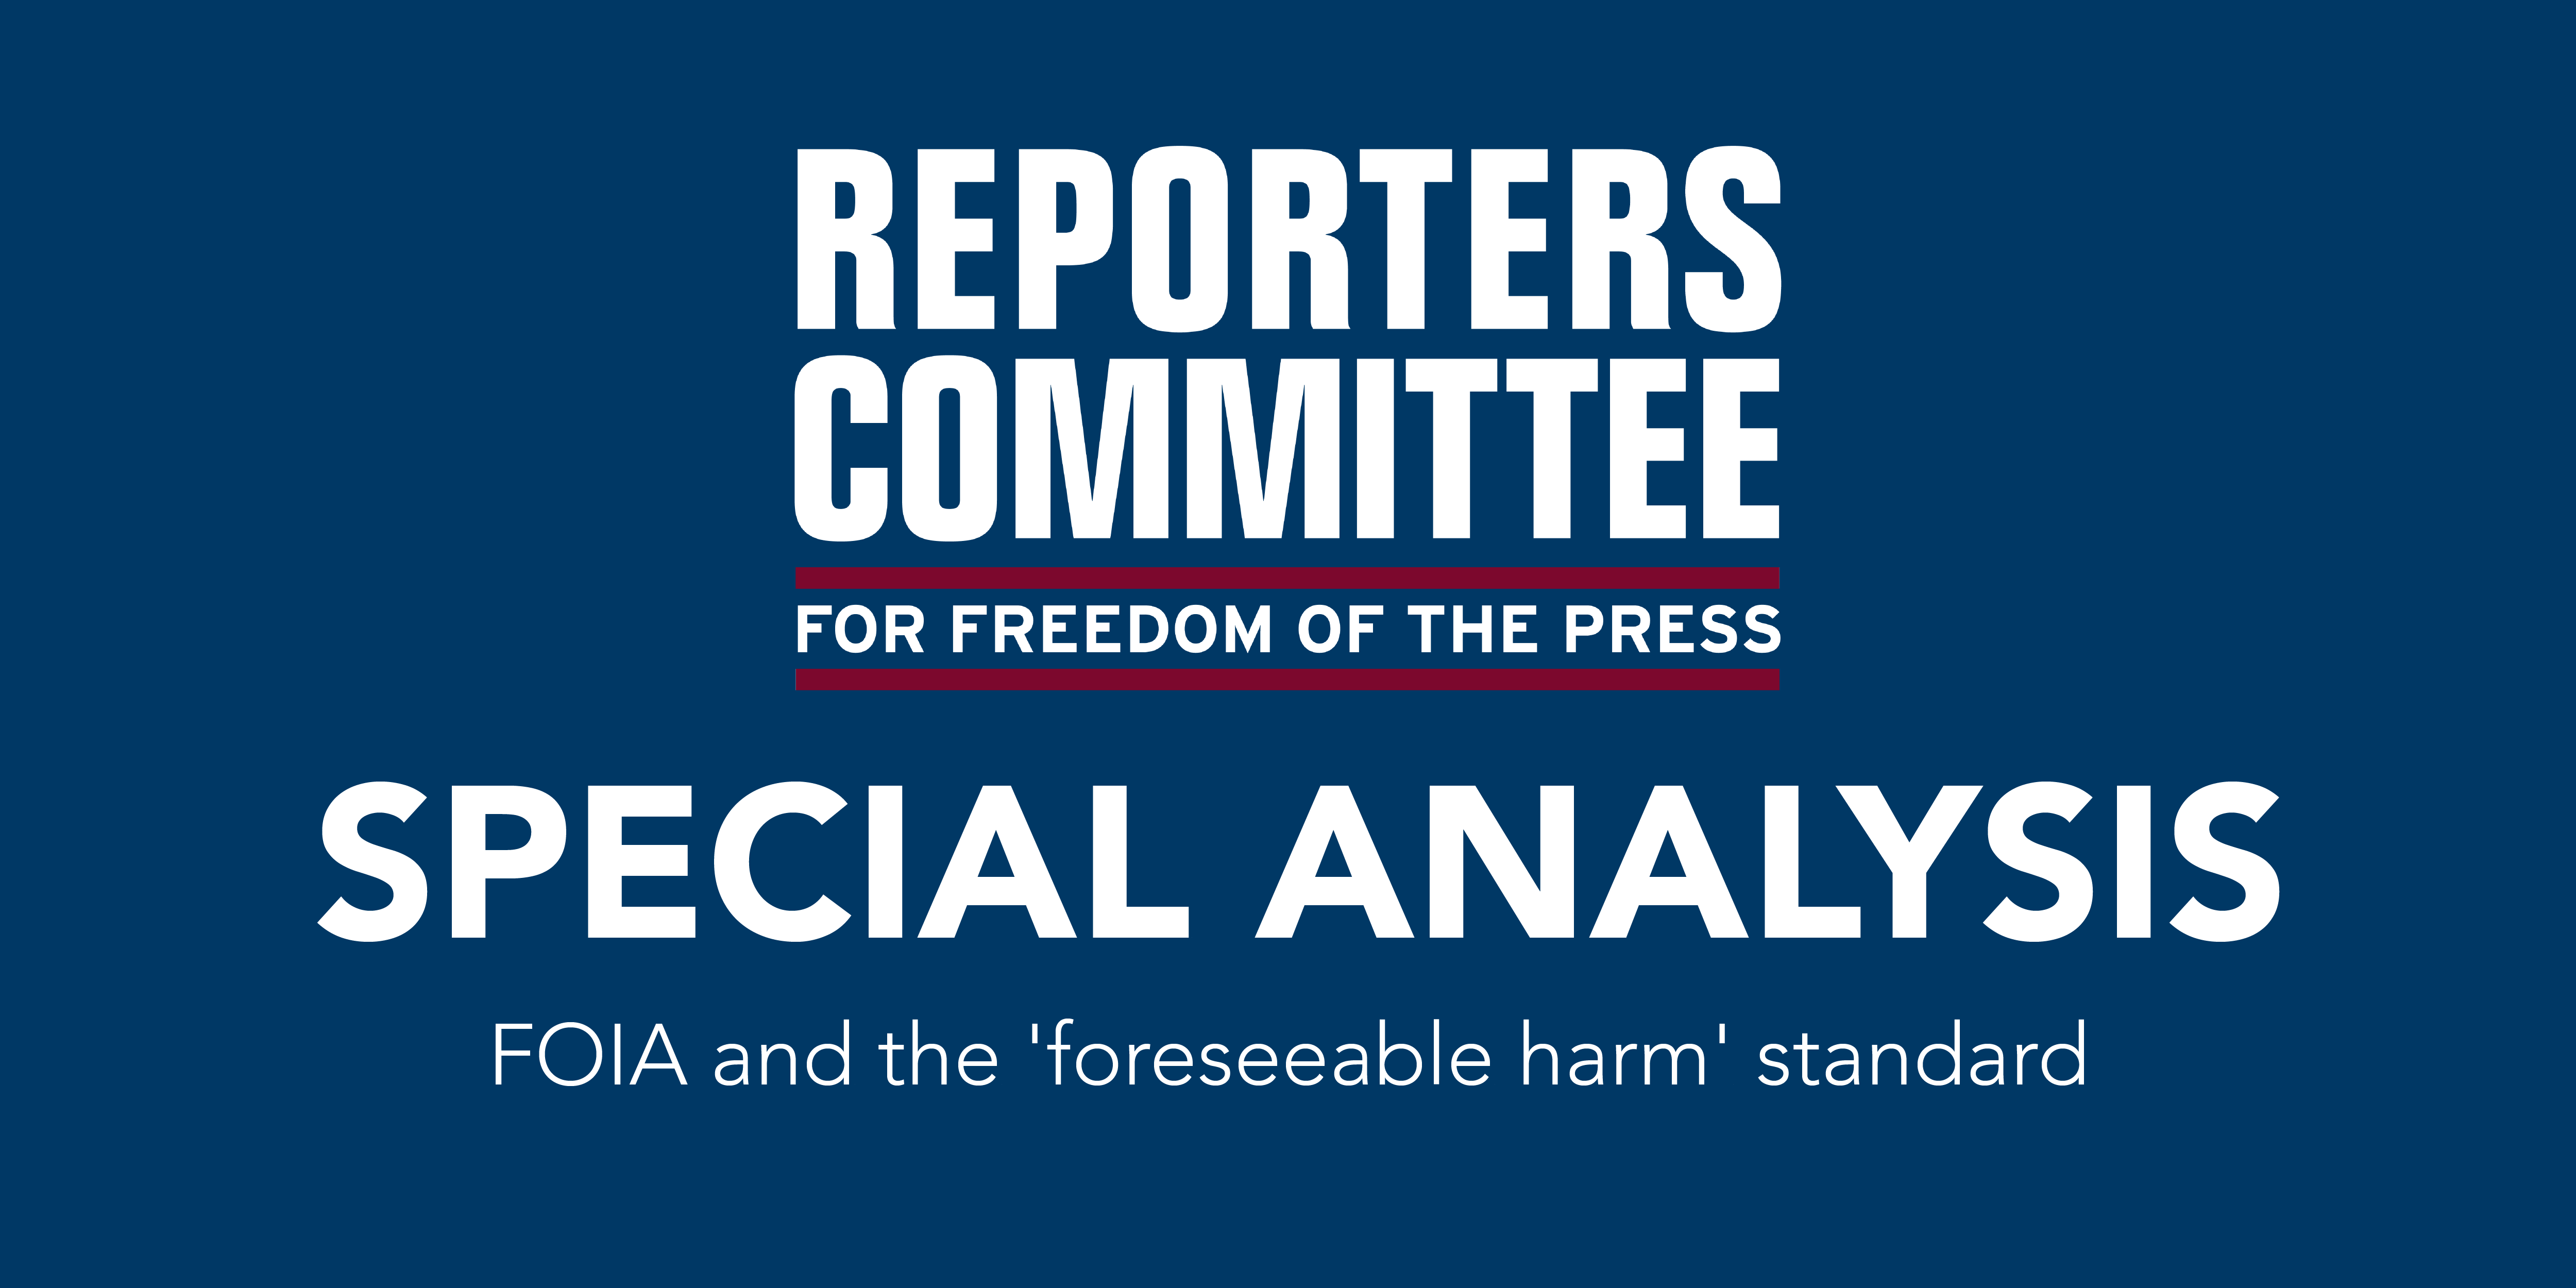 """Main image showing RCFP logo and text that says """"FOIA and the 'foreseeable harm' standard"""""""